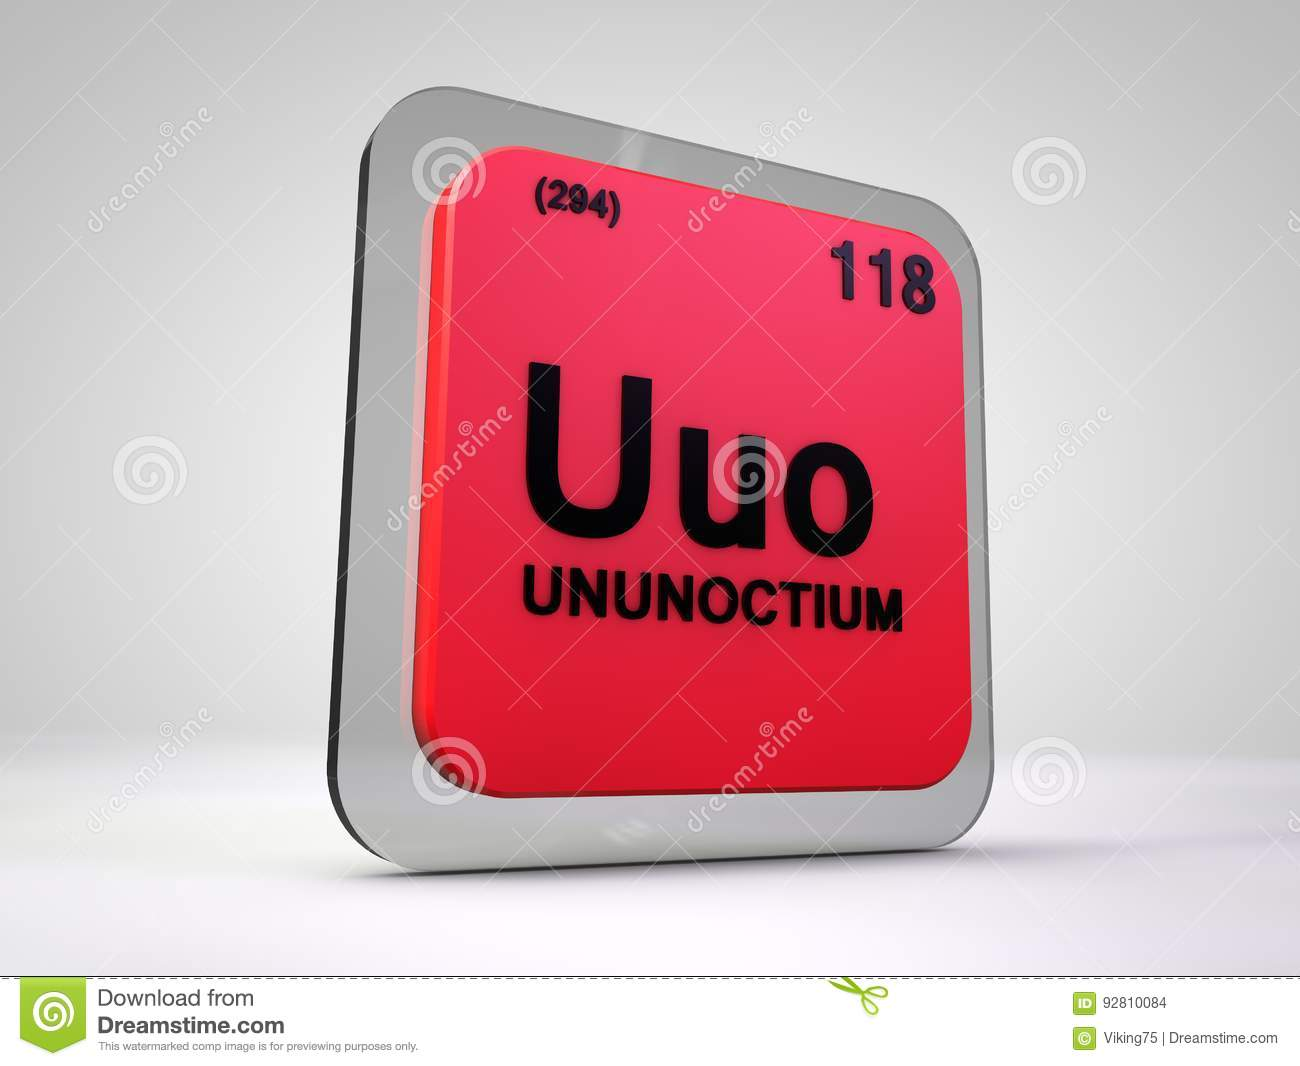 Ununoctium uuo chemical element periodic table stock download comp urtaz Choice Image